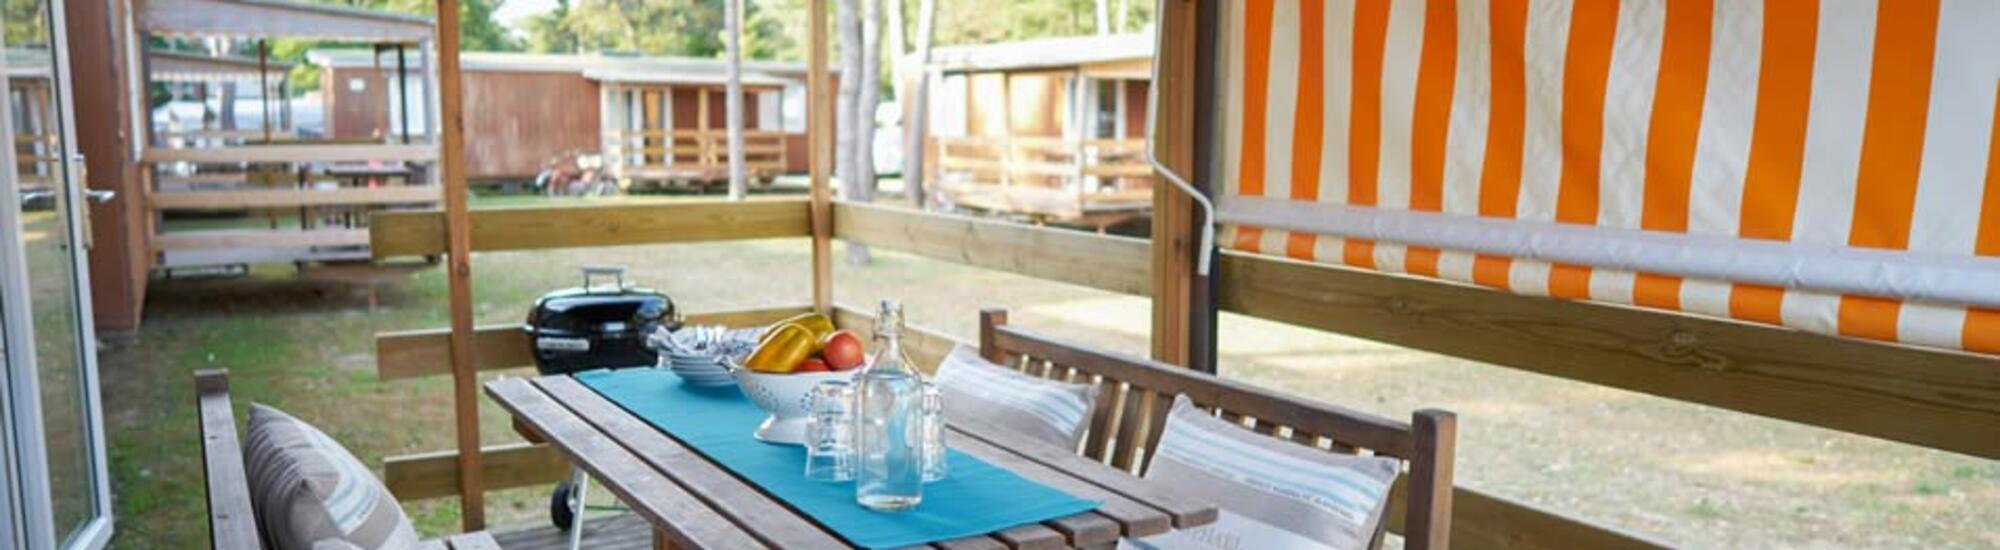 Short midweek stays in a mobile home in Bibione